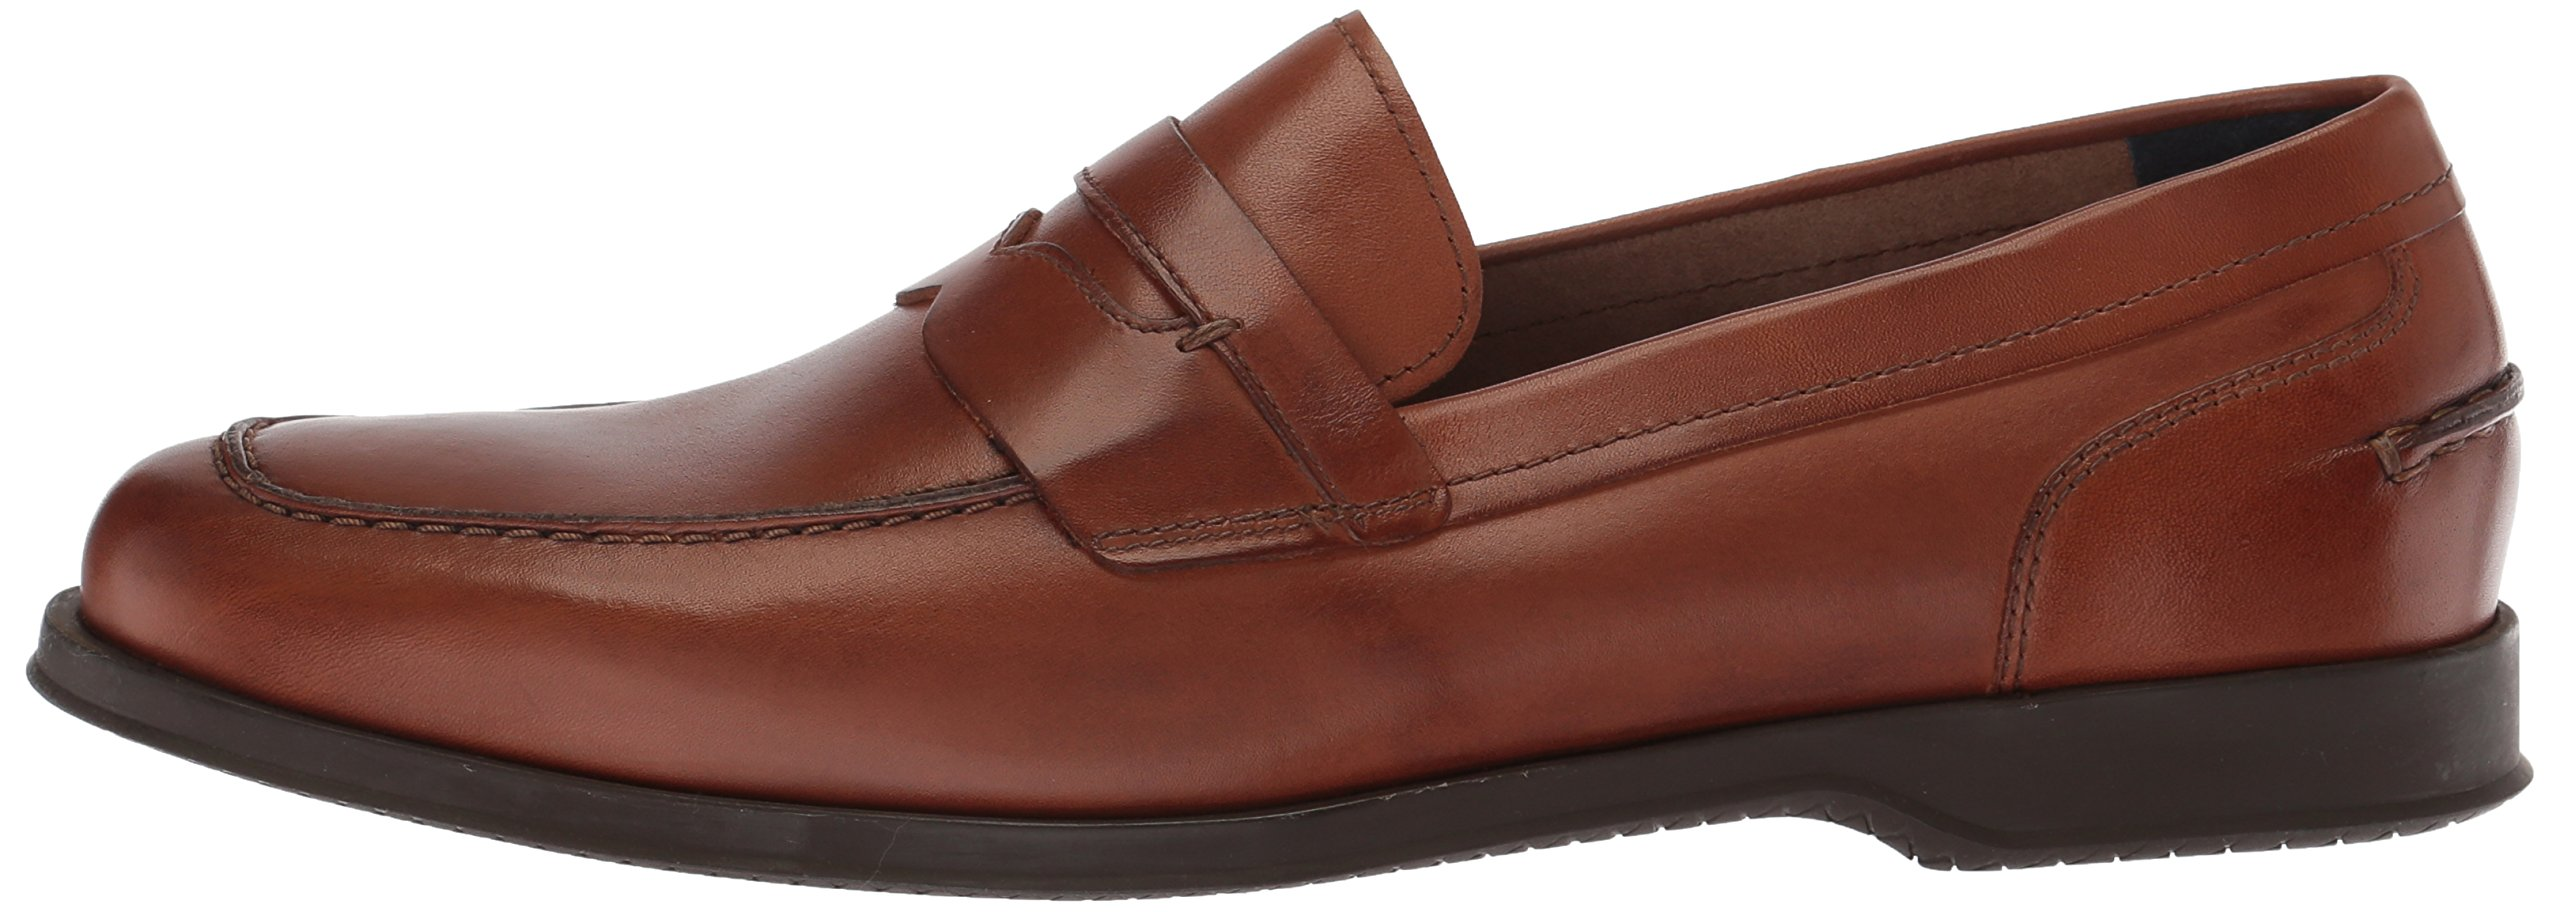 79ab9764aab Cole Haan Men s Fleming Penny Loafer   Loafers   Slip-Ons   Clothing ...